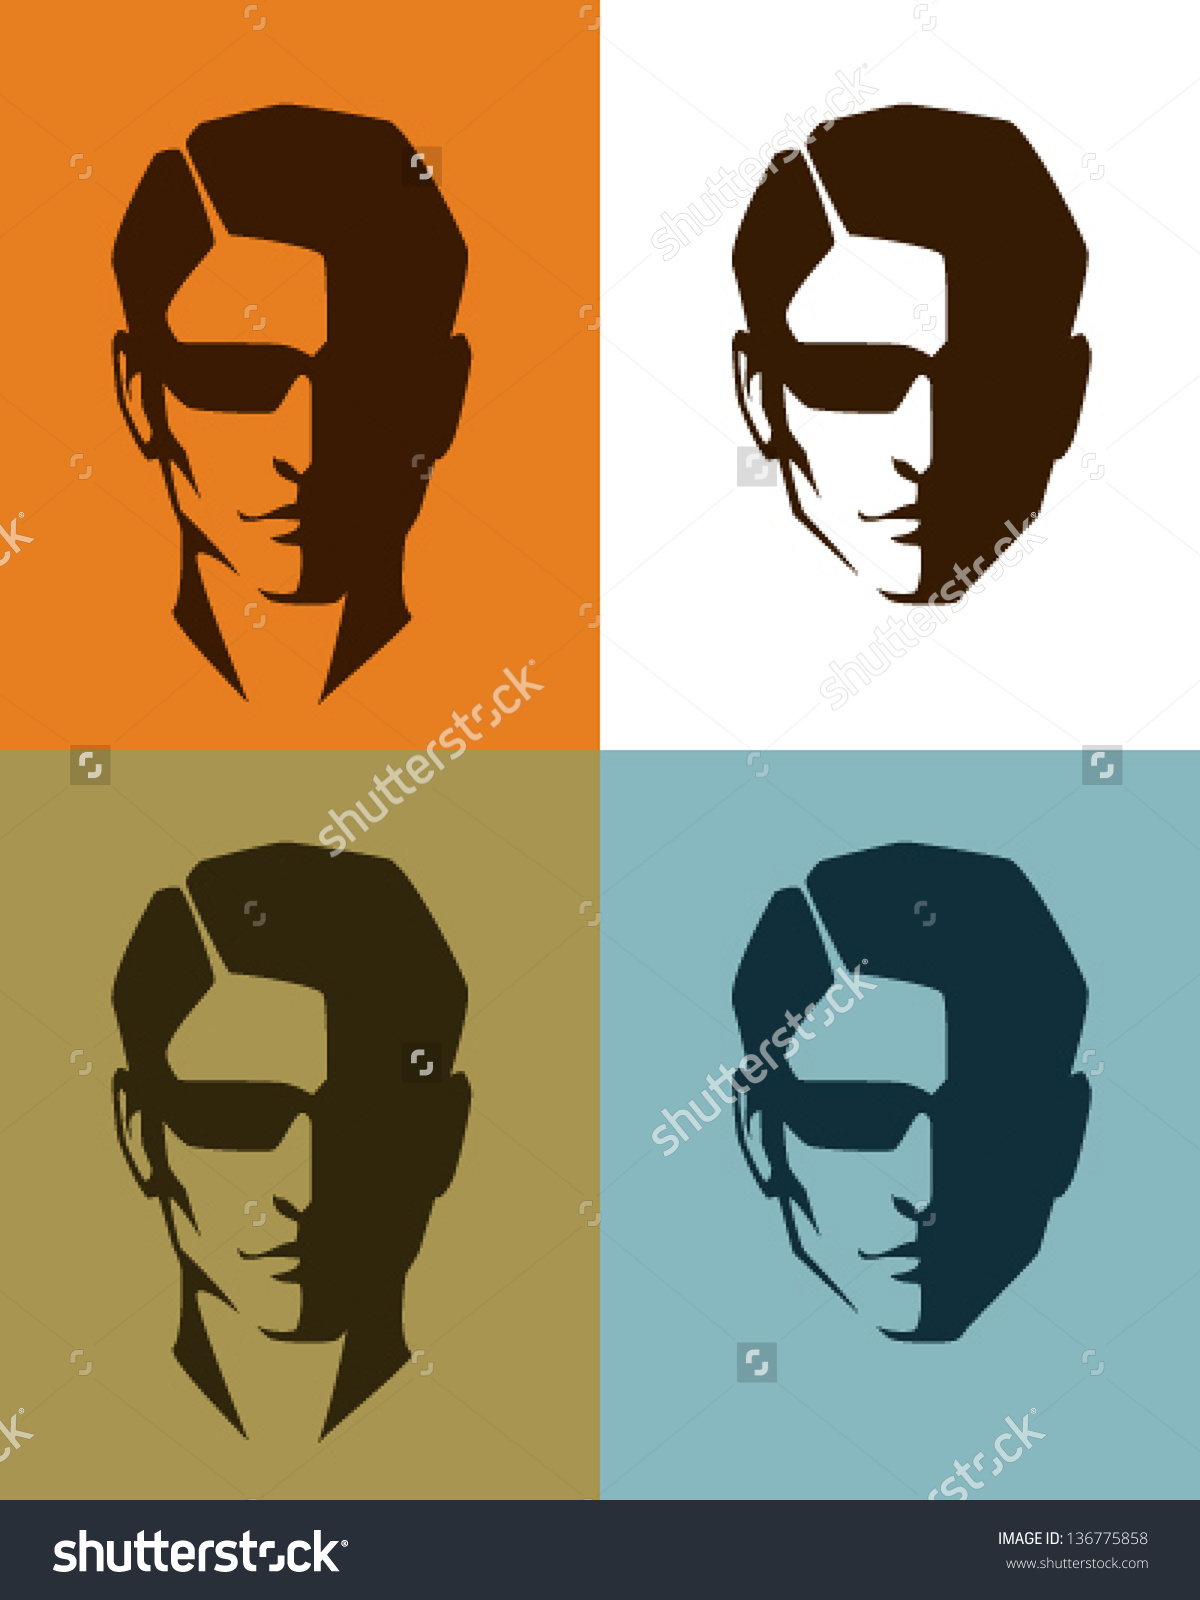 Simple Illustrations Handsome Man Face Sunglasses Stock Vector.